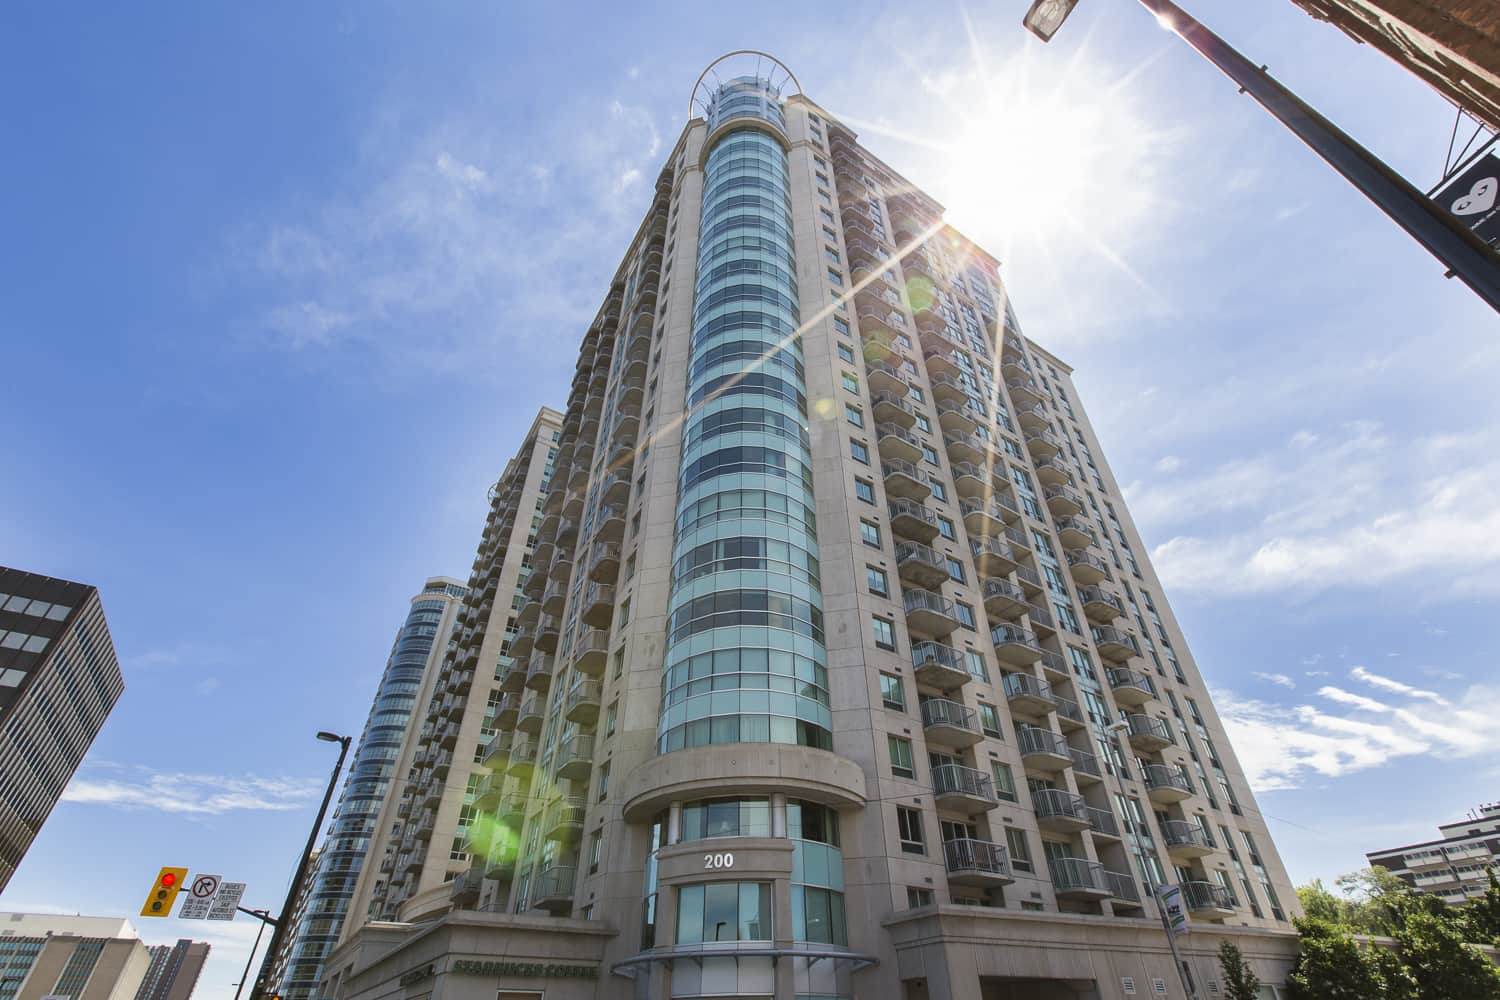 1007-200 Rideau luxury condo for sale central with concierge and security